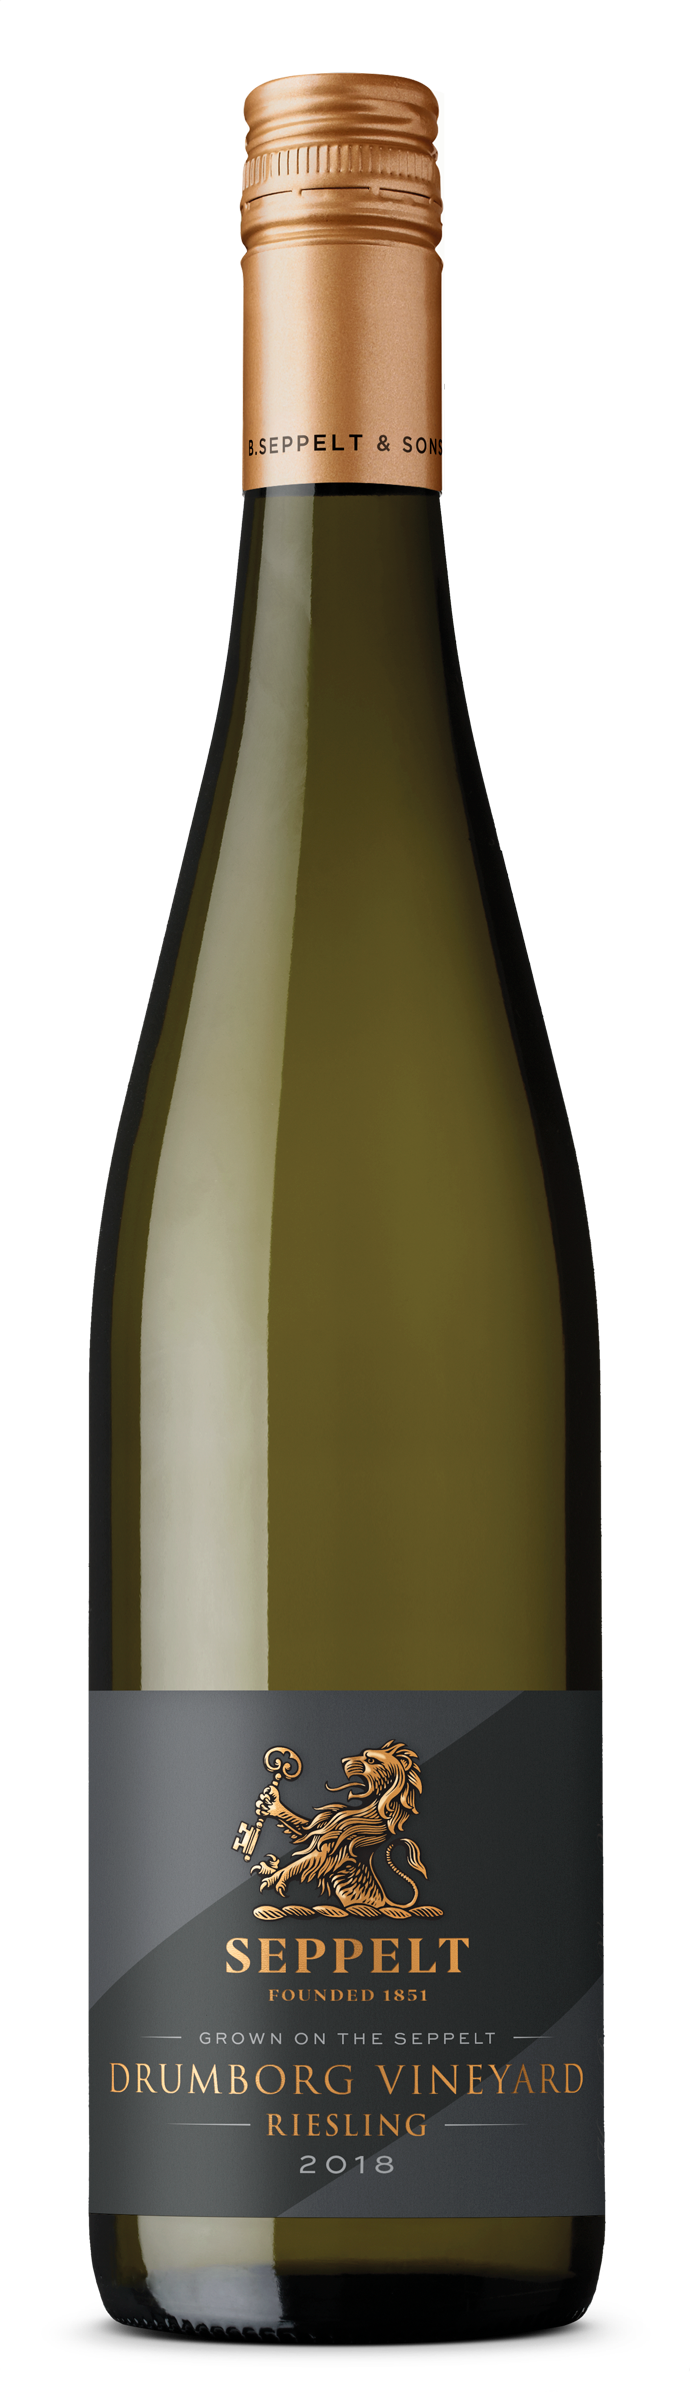 Under $180.00 per case (6) delivered - SEPPELT DRUMBORG Riesling (A) 2019